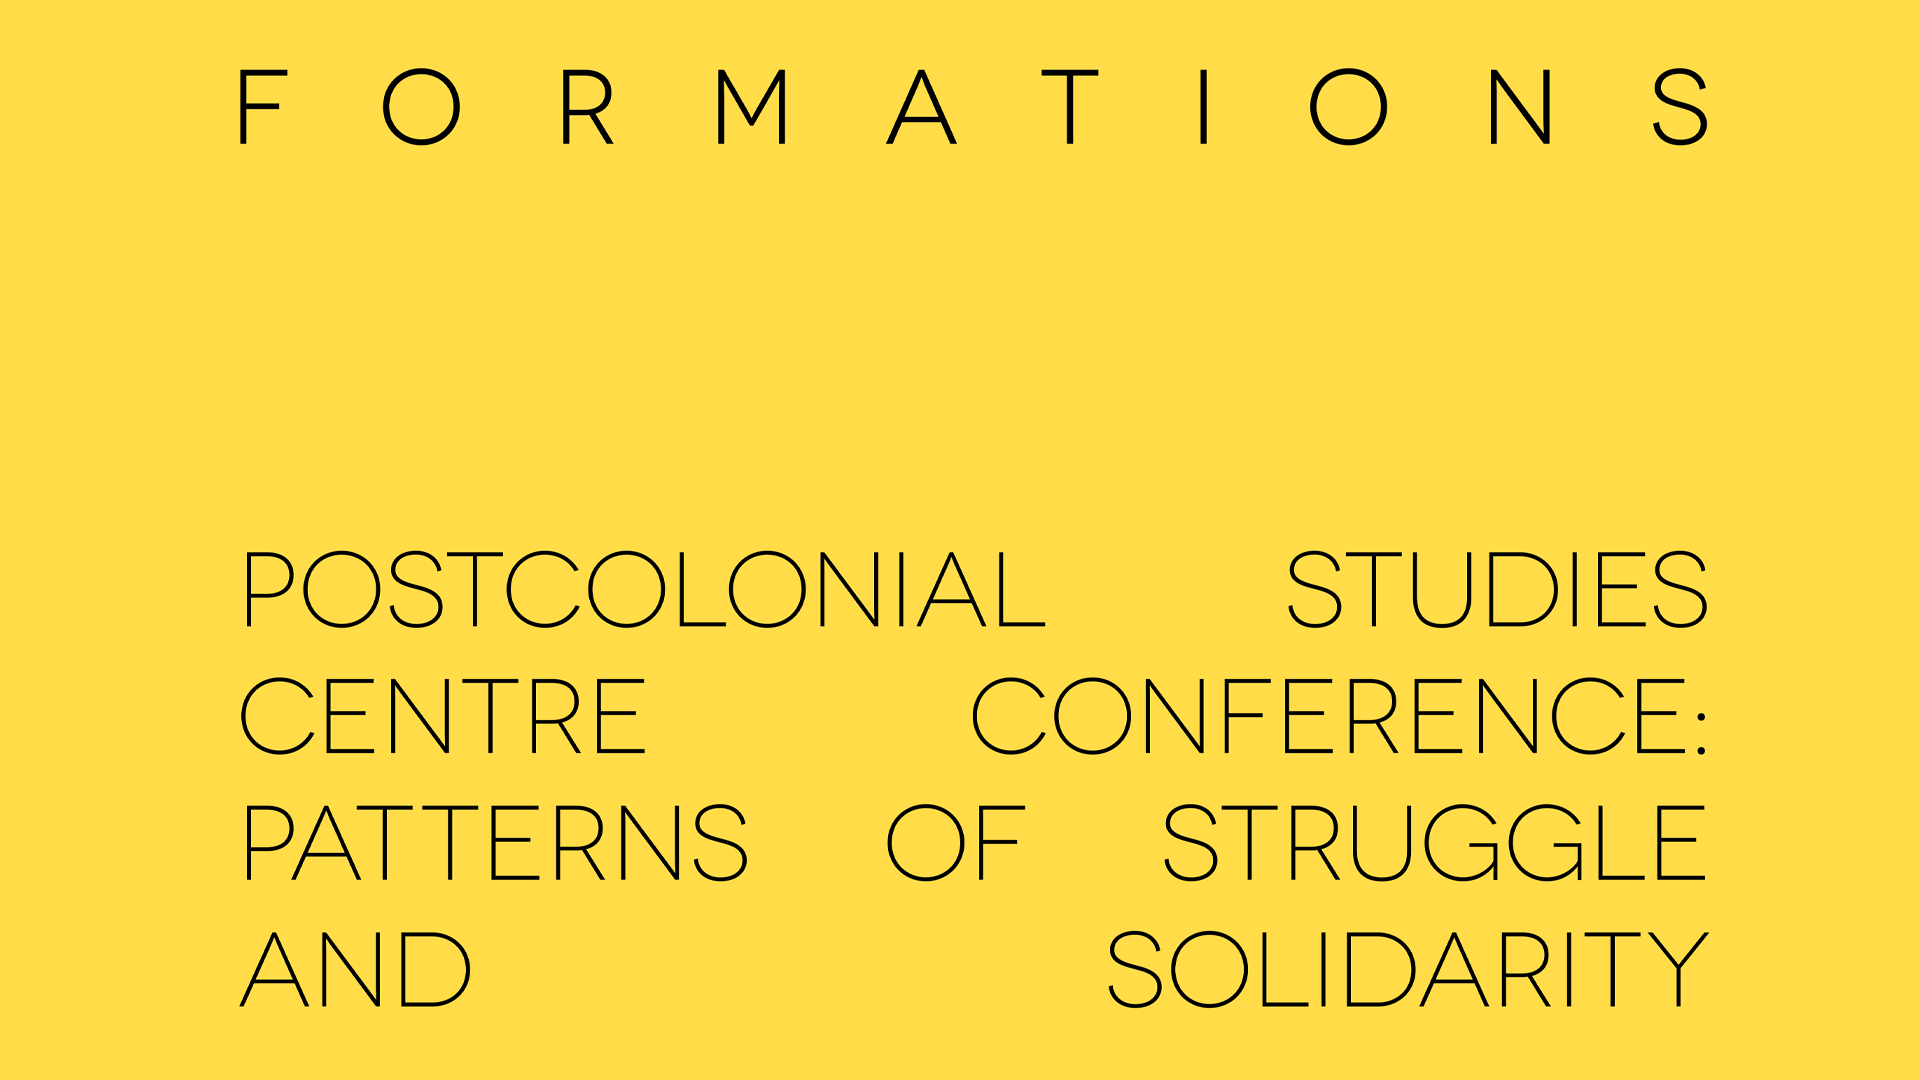 Formations PSC conference